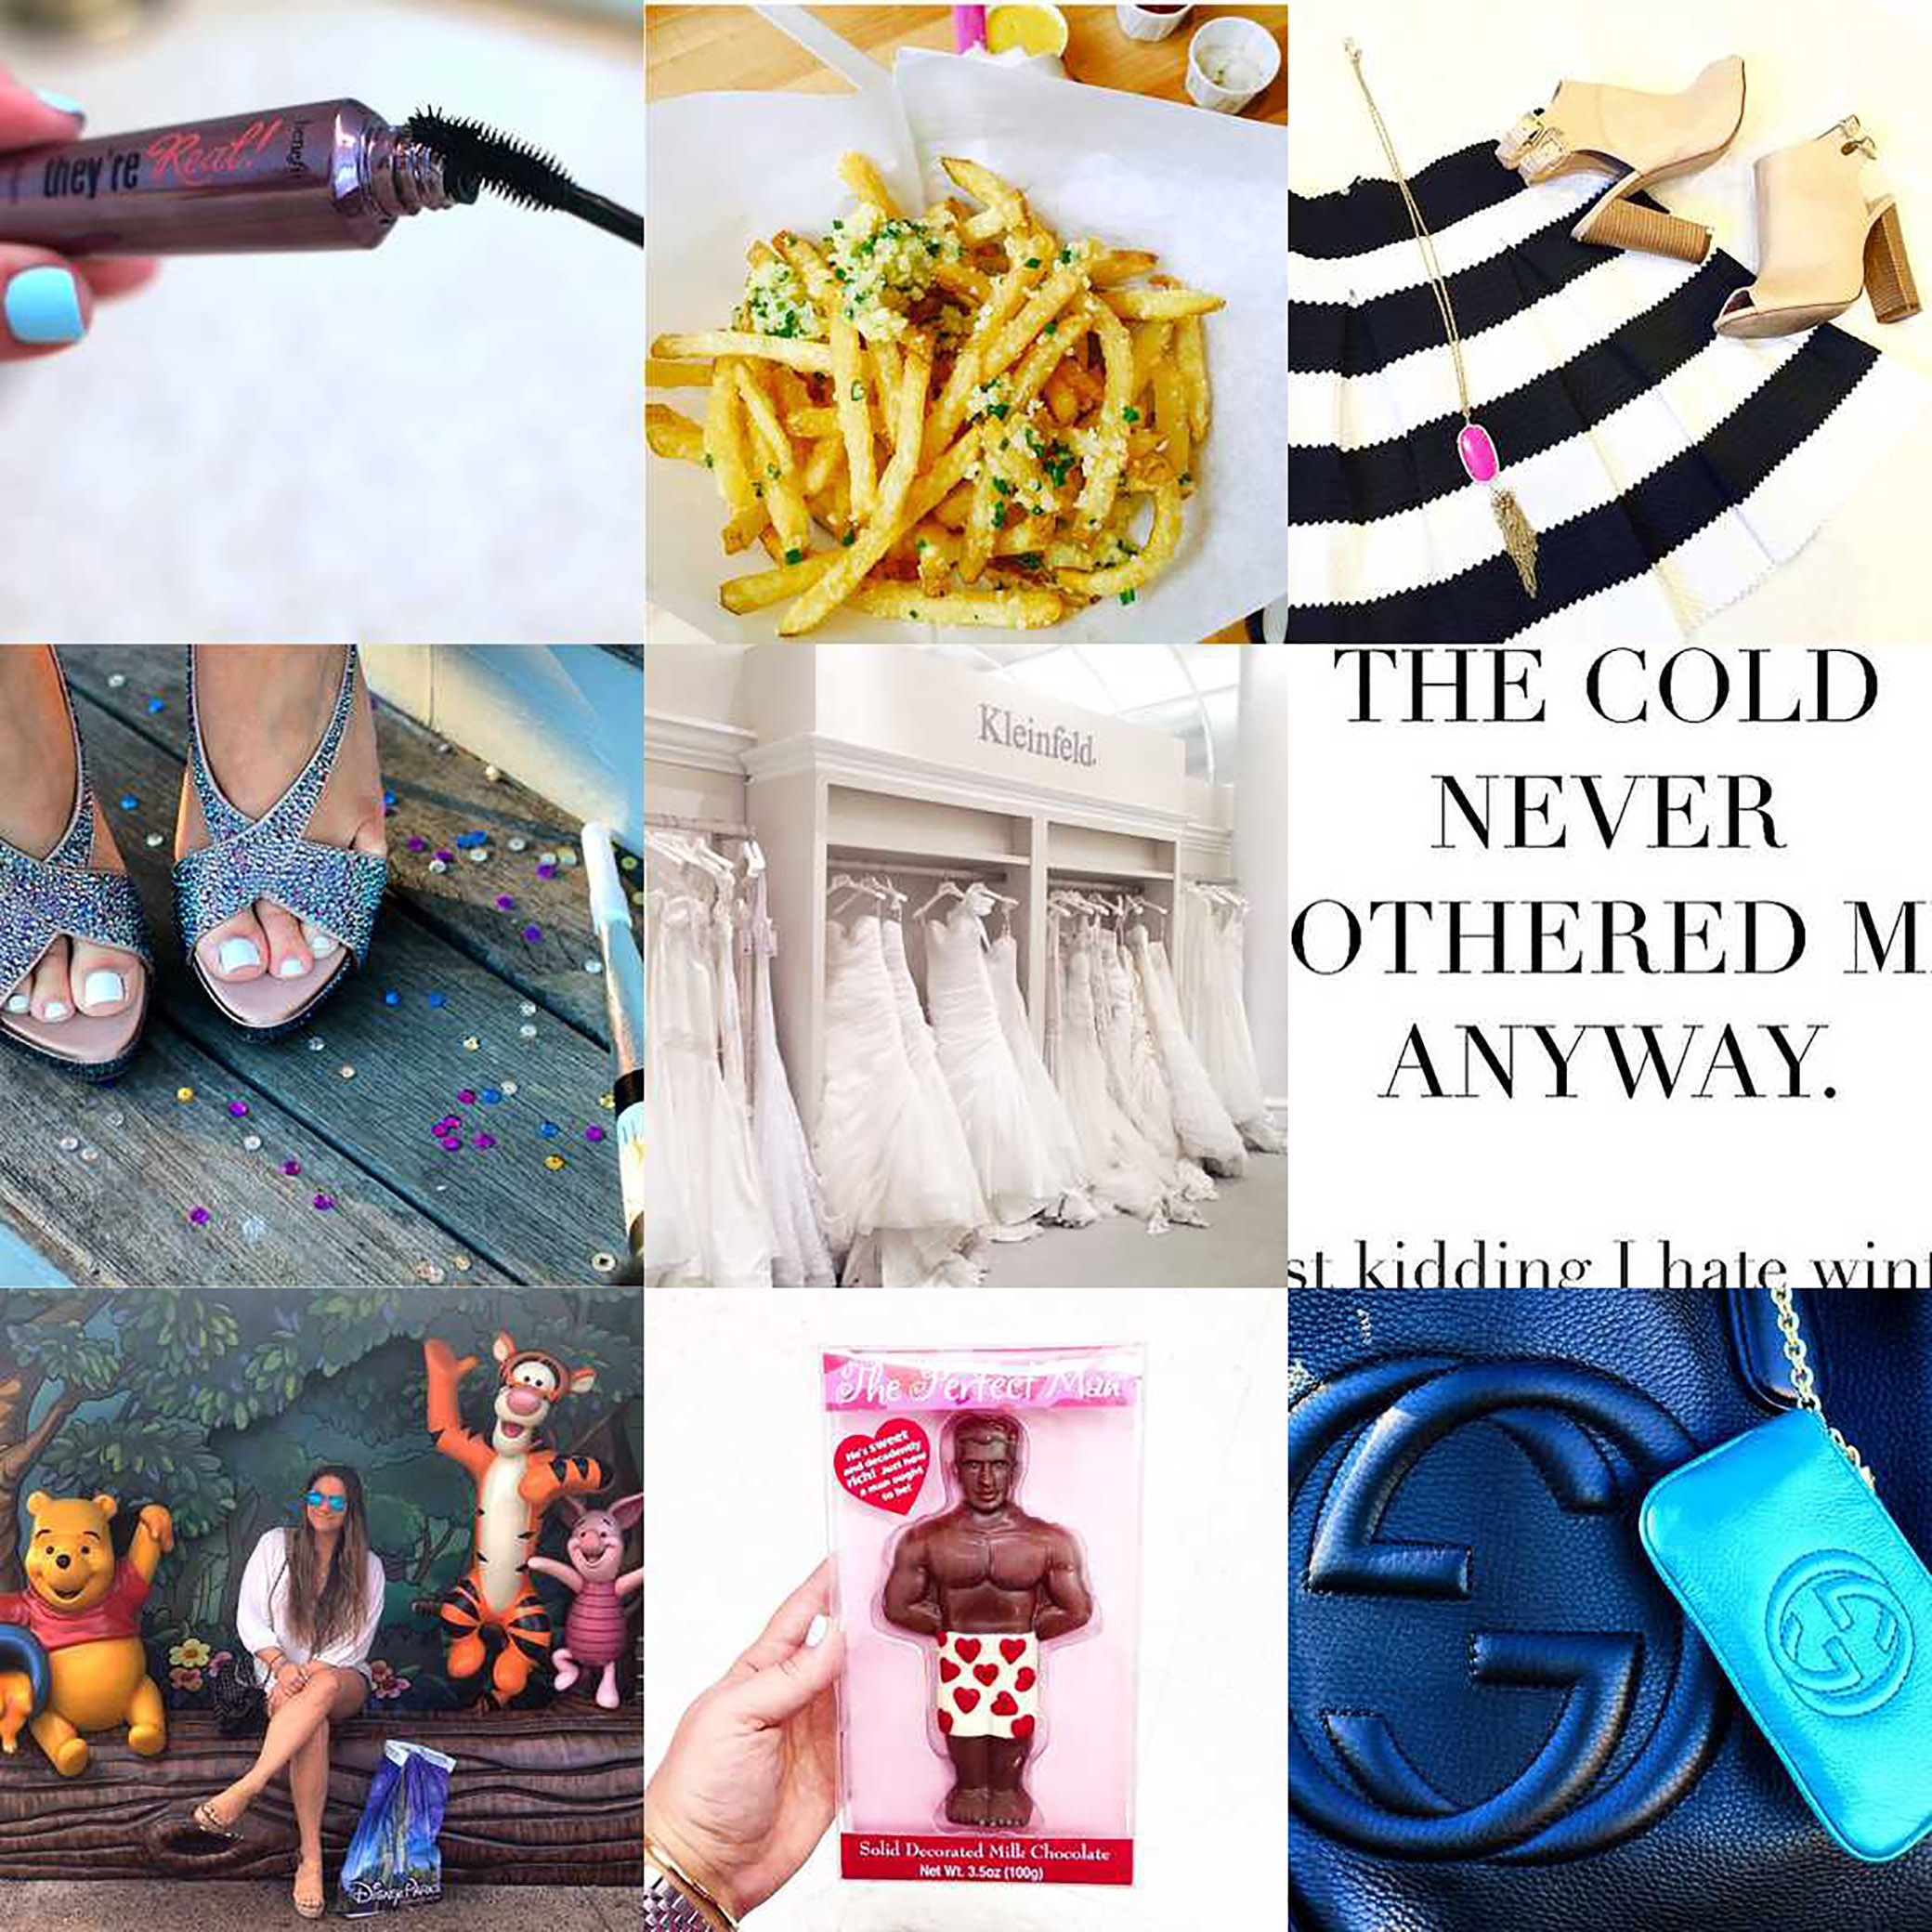 missyonmadison, melissa tierney, fashion blog, fashion blogger, best of 2015, nine best of 2015, 9 best of 2015, top 9 of 2015, style blog, outfit inspo, outfit goals, tulle skirt, romper, birthday outfit, nyc style, la style, vera bradley, colored heels, just fab, shoedazzle, outfit trends, asos, red lace up flats, new balance sneakers, black maxi dress, carolinna espinosa heels, best nine of 2015, frozen, quotes, disney,